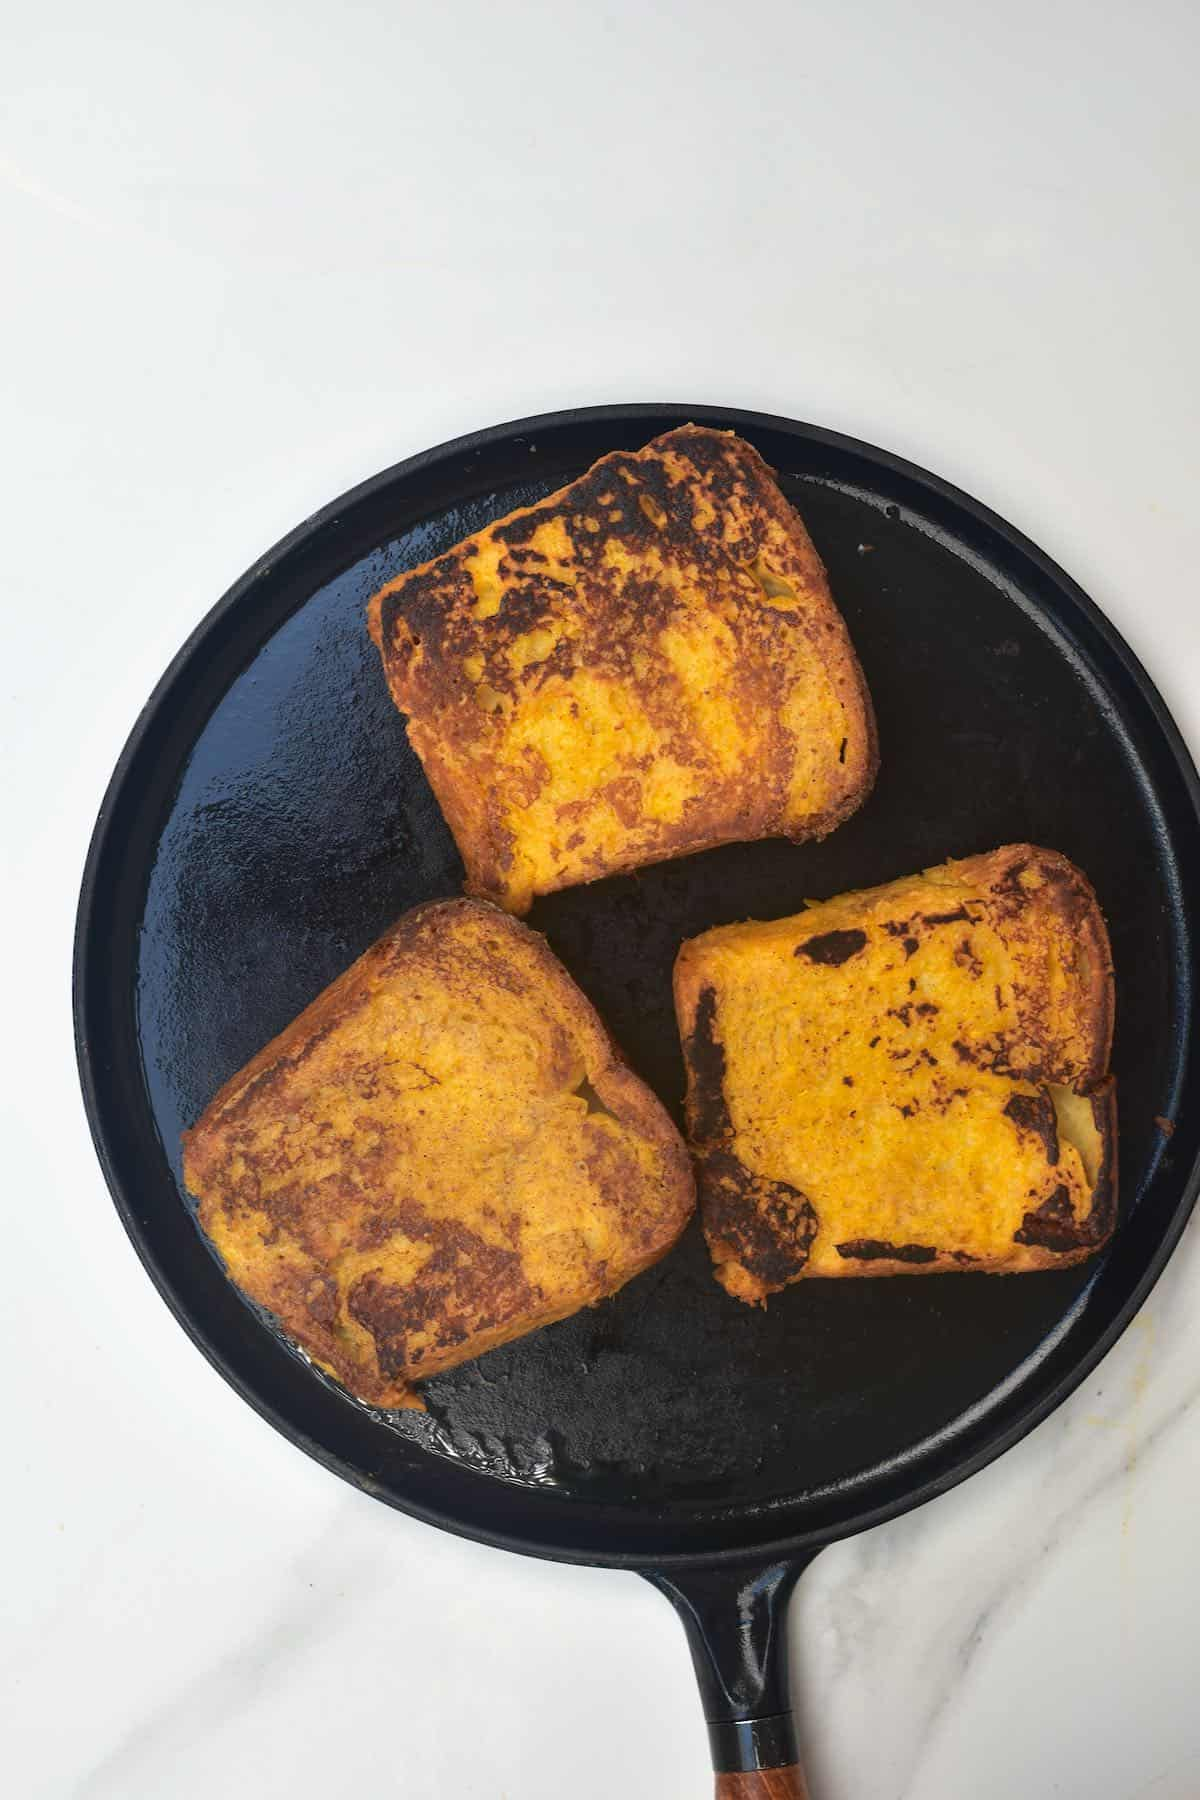 Pan-fried brioche French toast slices